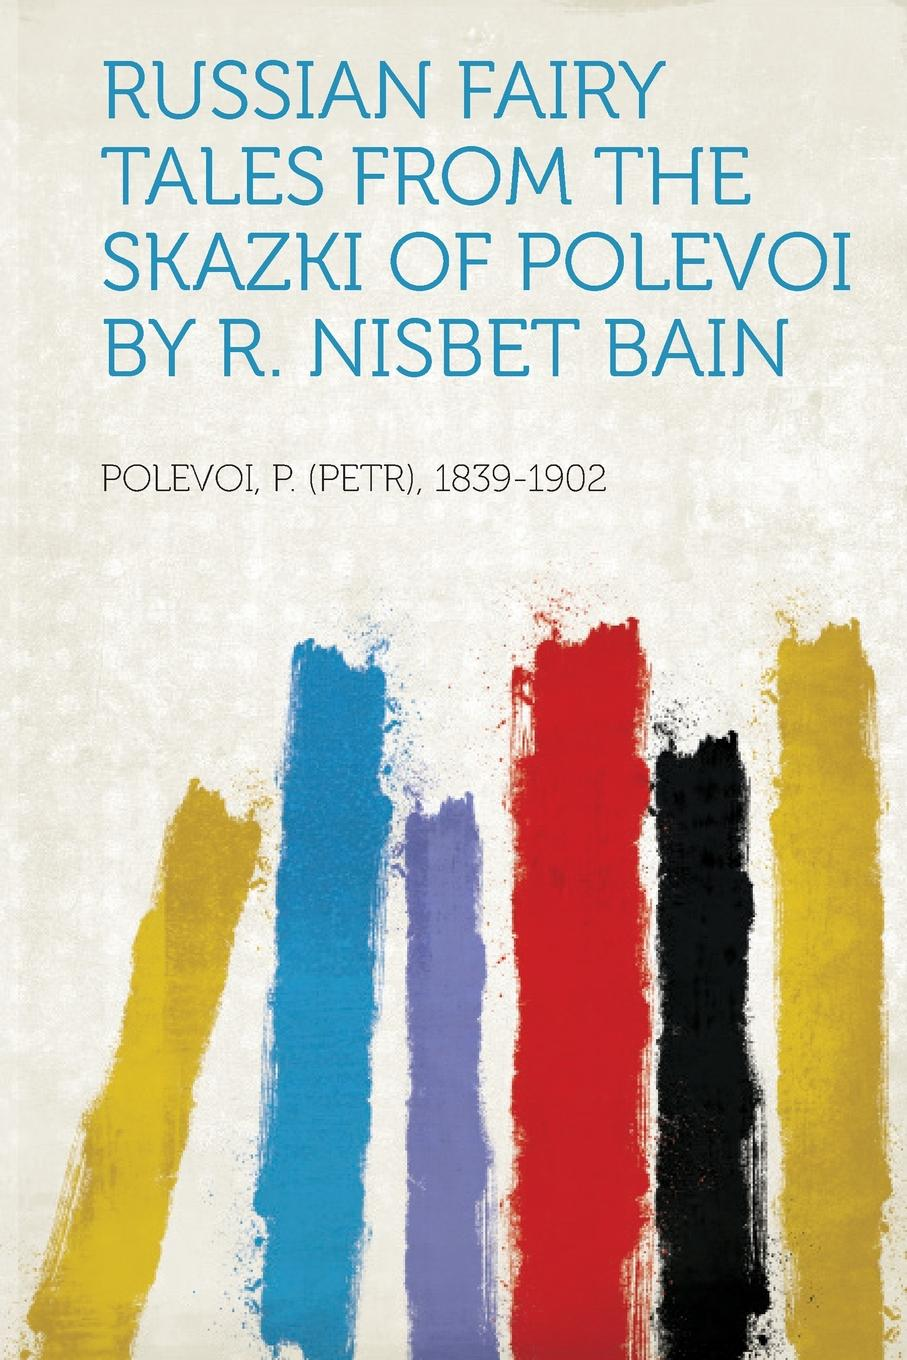 Russian Fairy Tales from the Skazki of Polevoi by R. Nisbet Bain